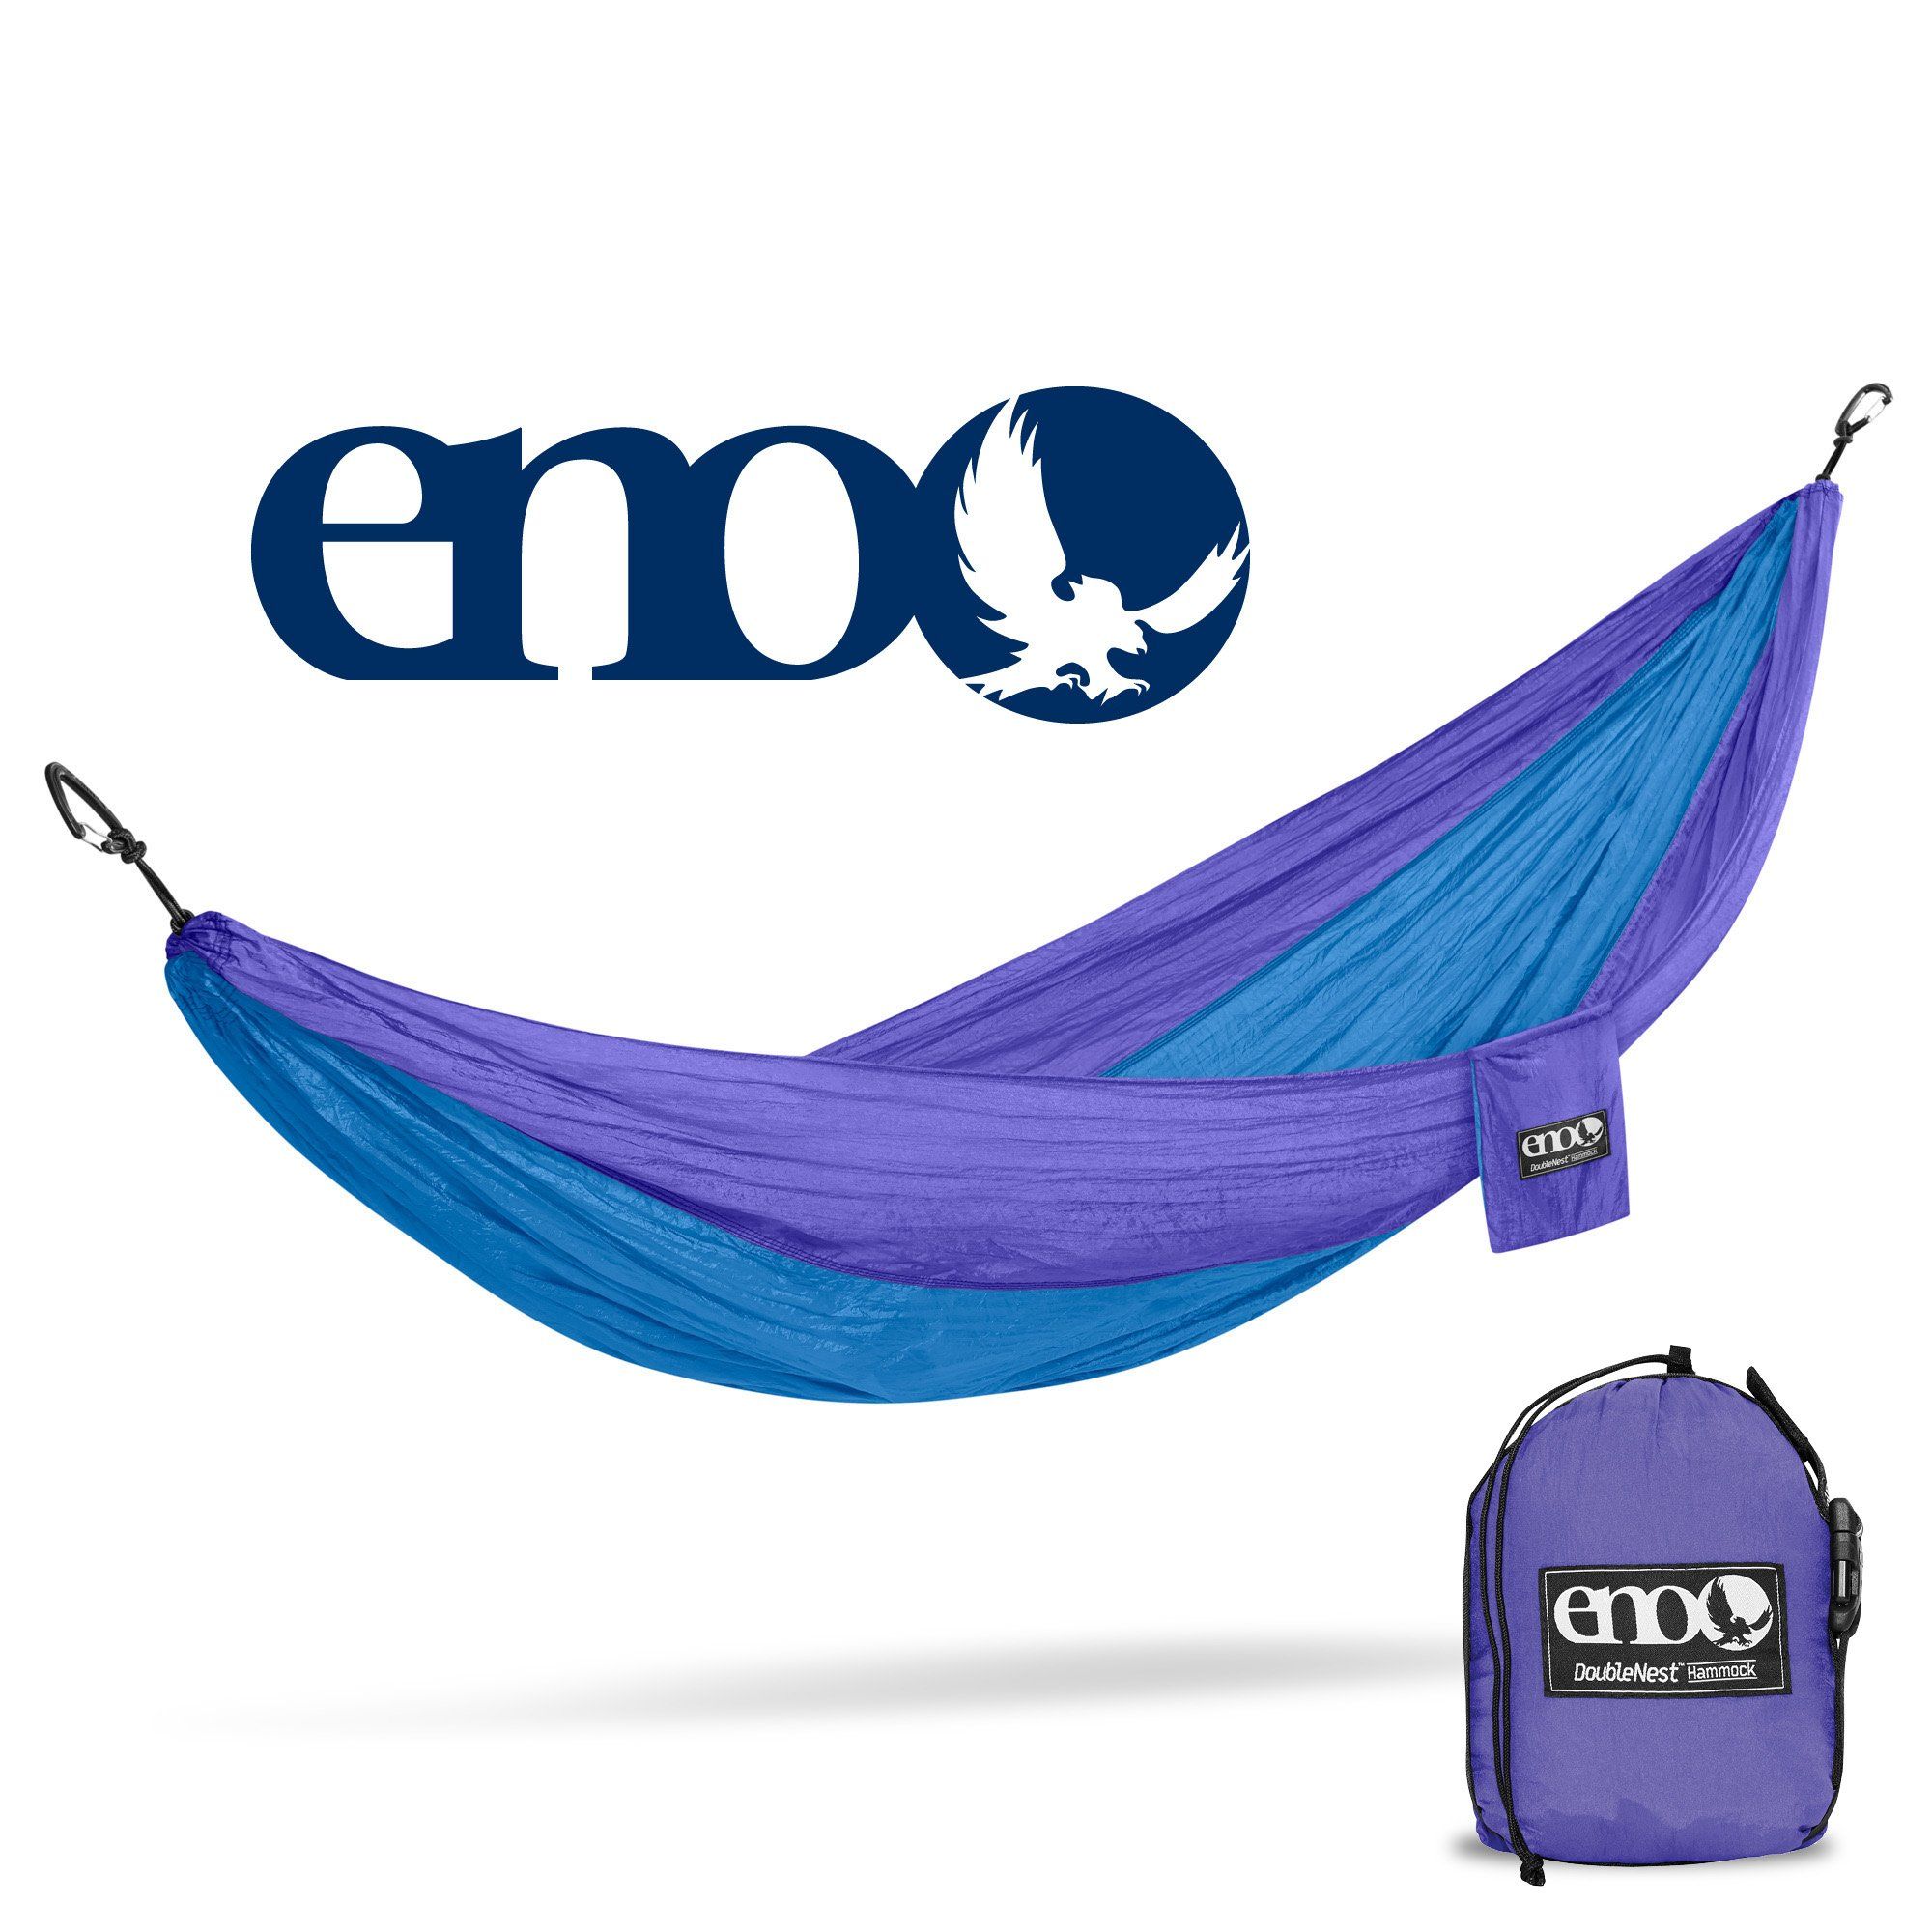 Eagles Nest Outfitters ENO DoubleNest Hammock, Portable Hammock for Two, Purple/Teal (FFP)